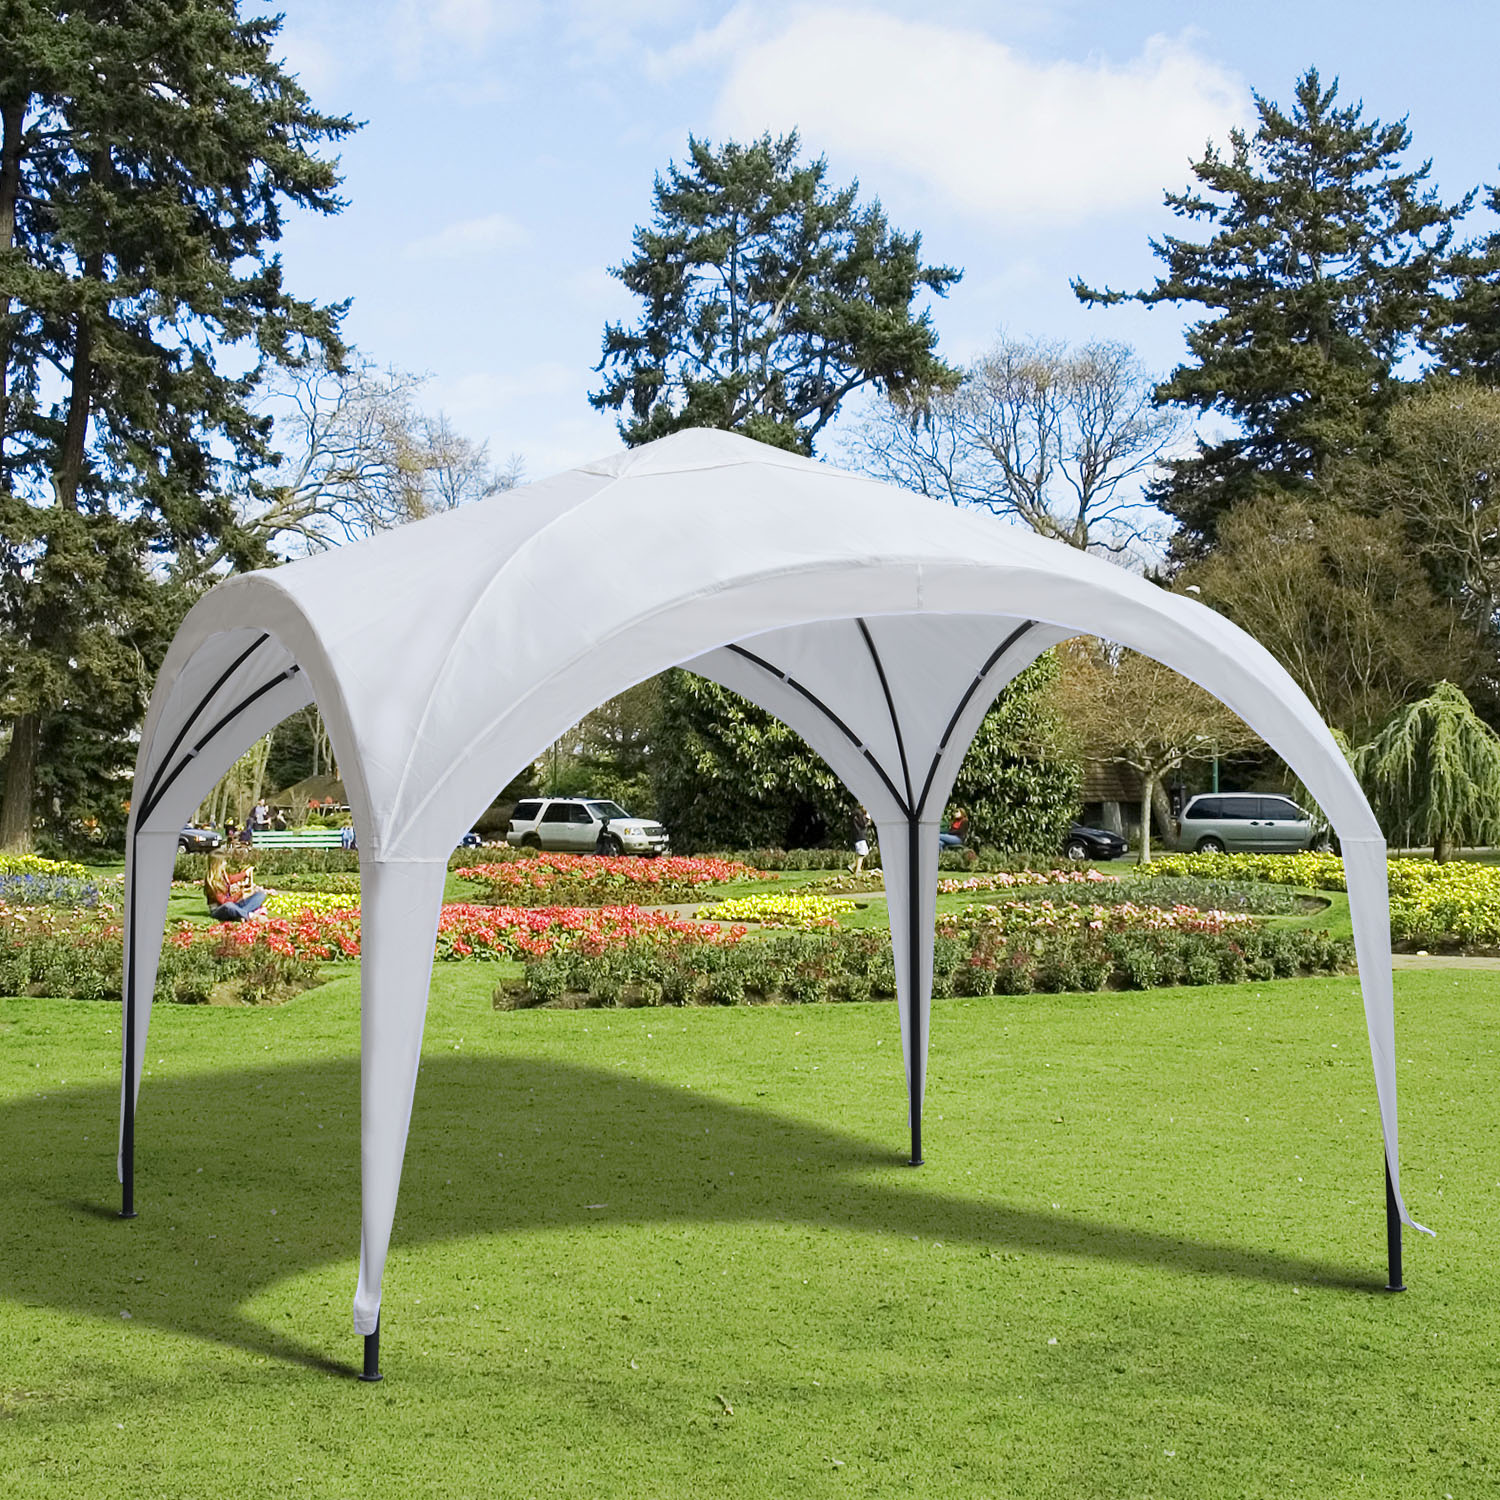 Image of CAD $129.99 Outsunny 10'x10' Outdoor Canopy Tent Patio Sunshade Cover White / 10x10ft Portable Gazebo Dome Garden Sun Shelter with Durable Frame Canada 95509793058